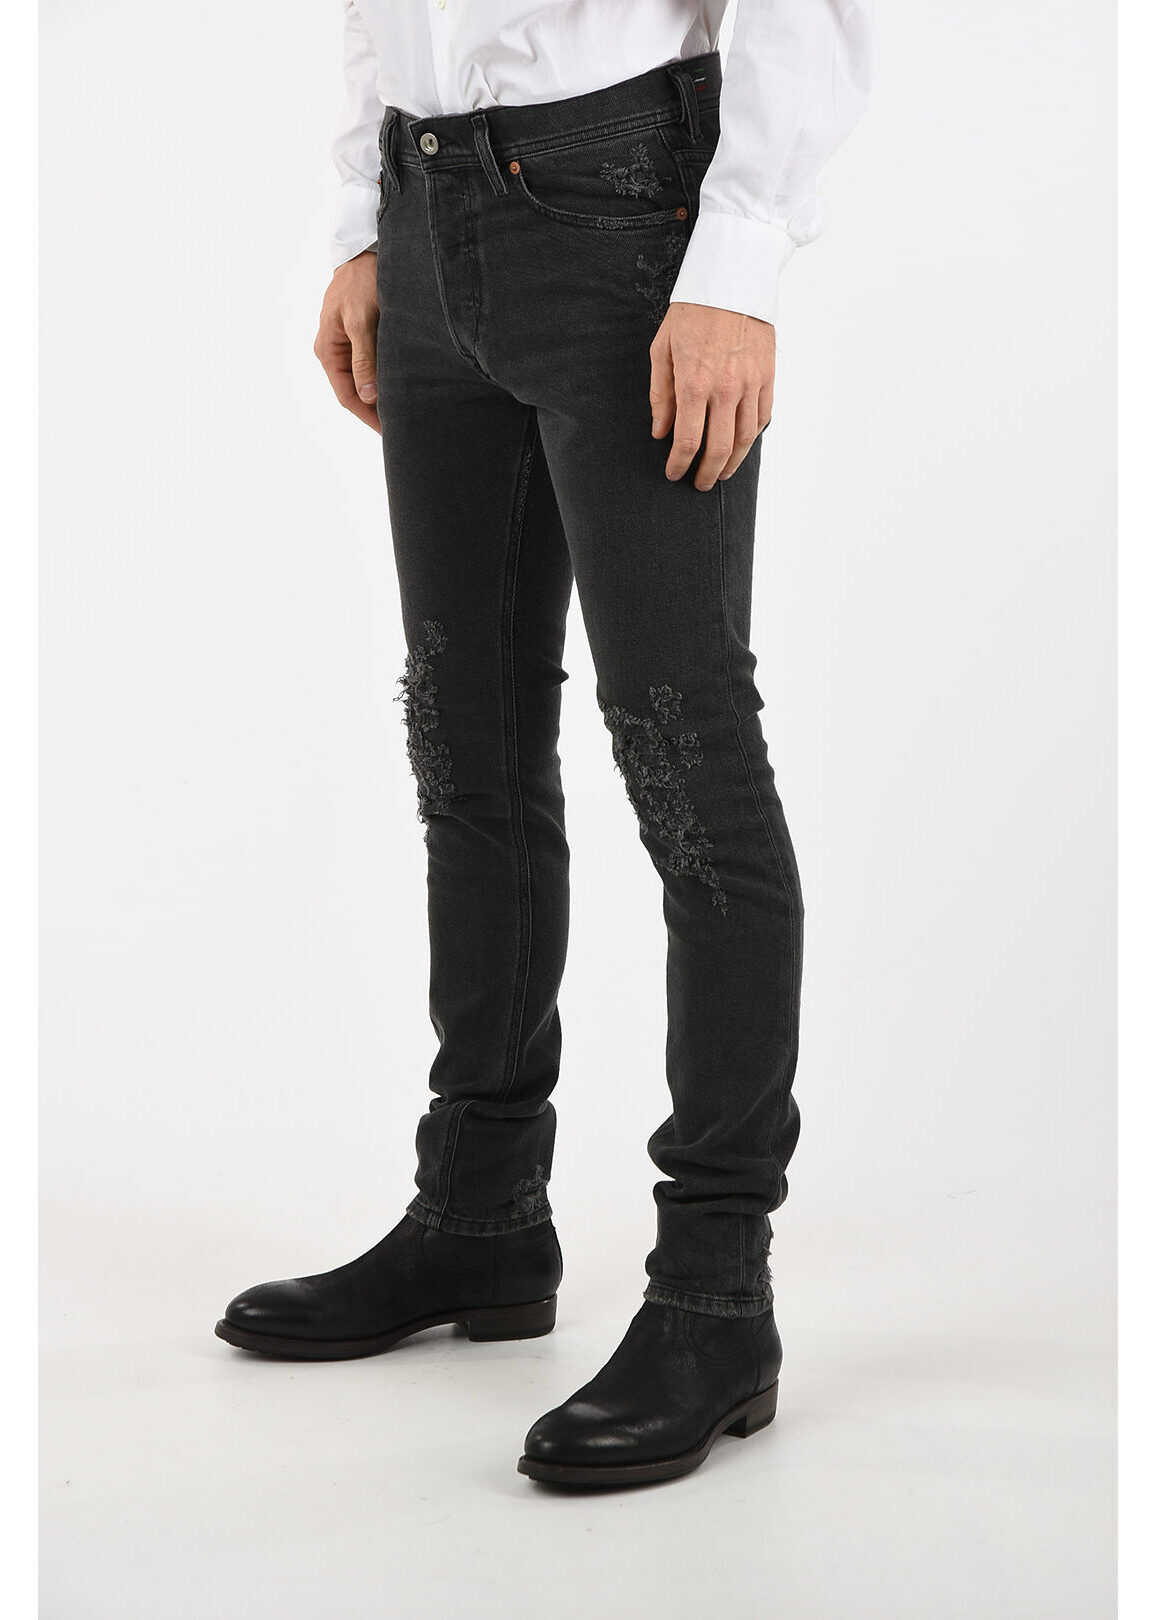 Diesel 15cm Distressed TEPPHAR Jeans L32 BLACK imagine